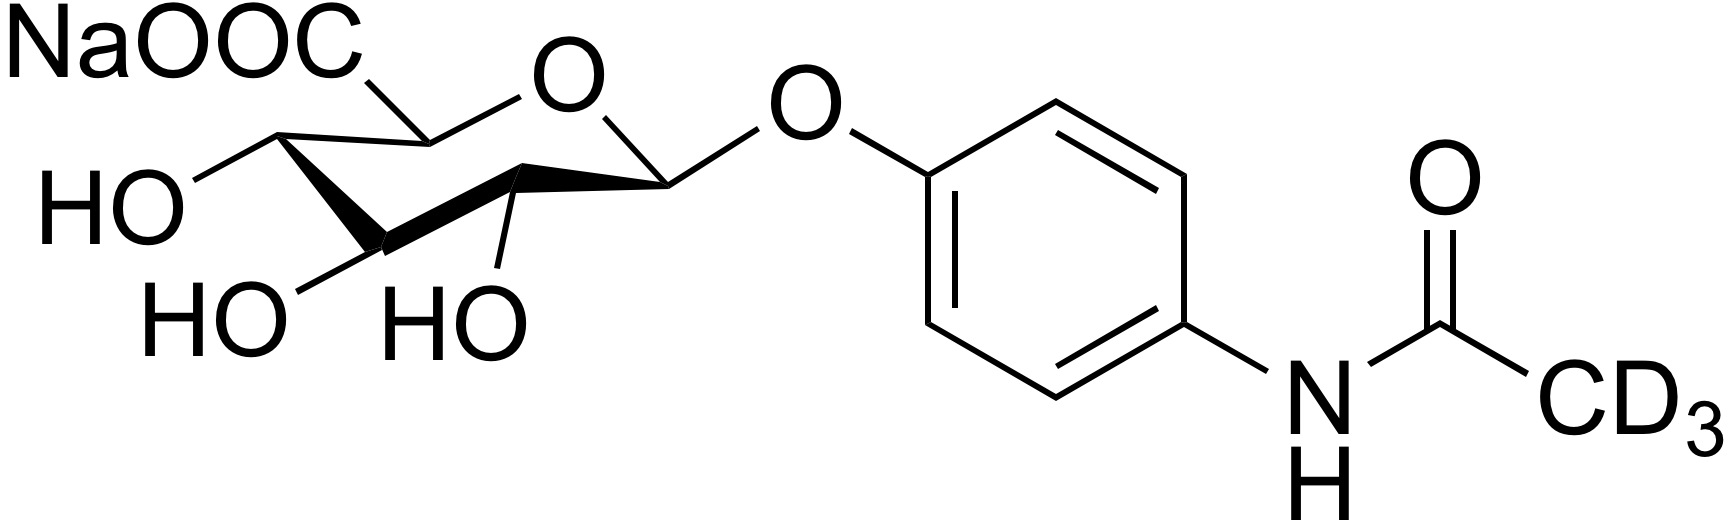 4-Acetamidophenyl β-D-glucuronide-d<sub>3</sub> sodium salt